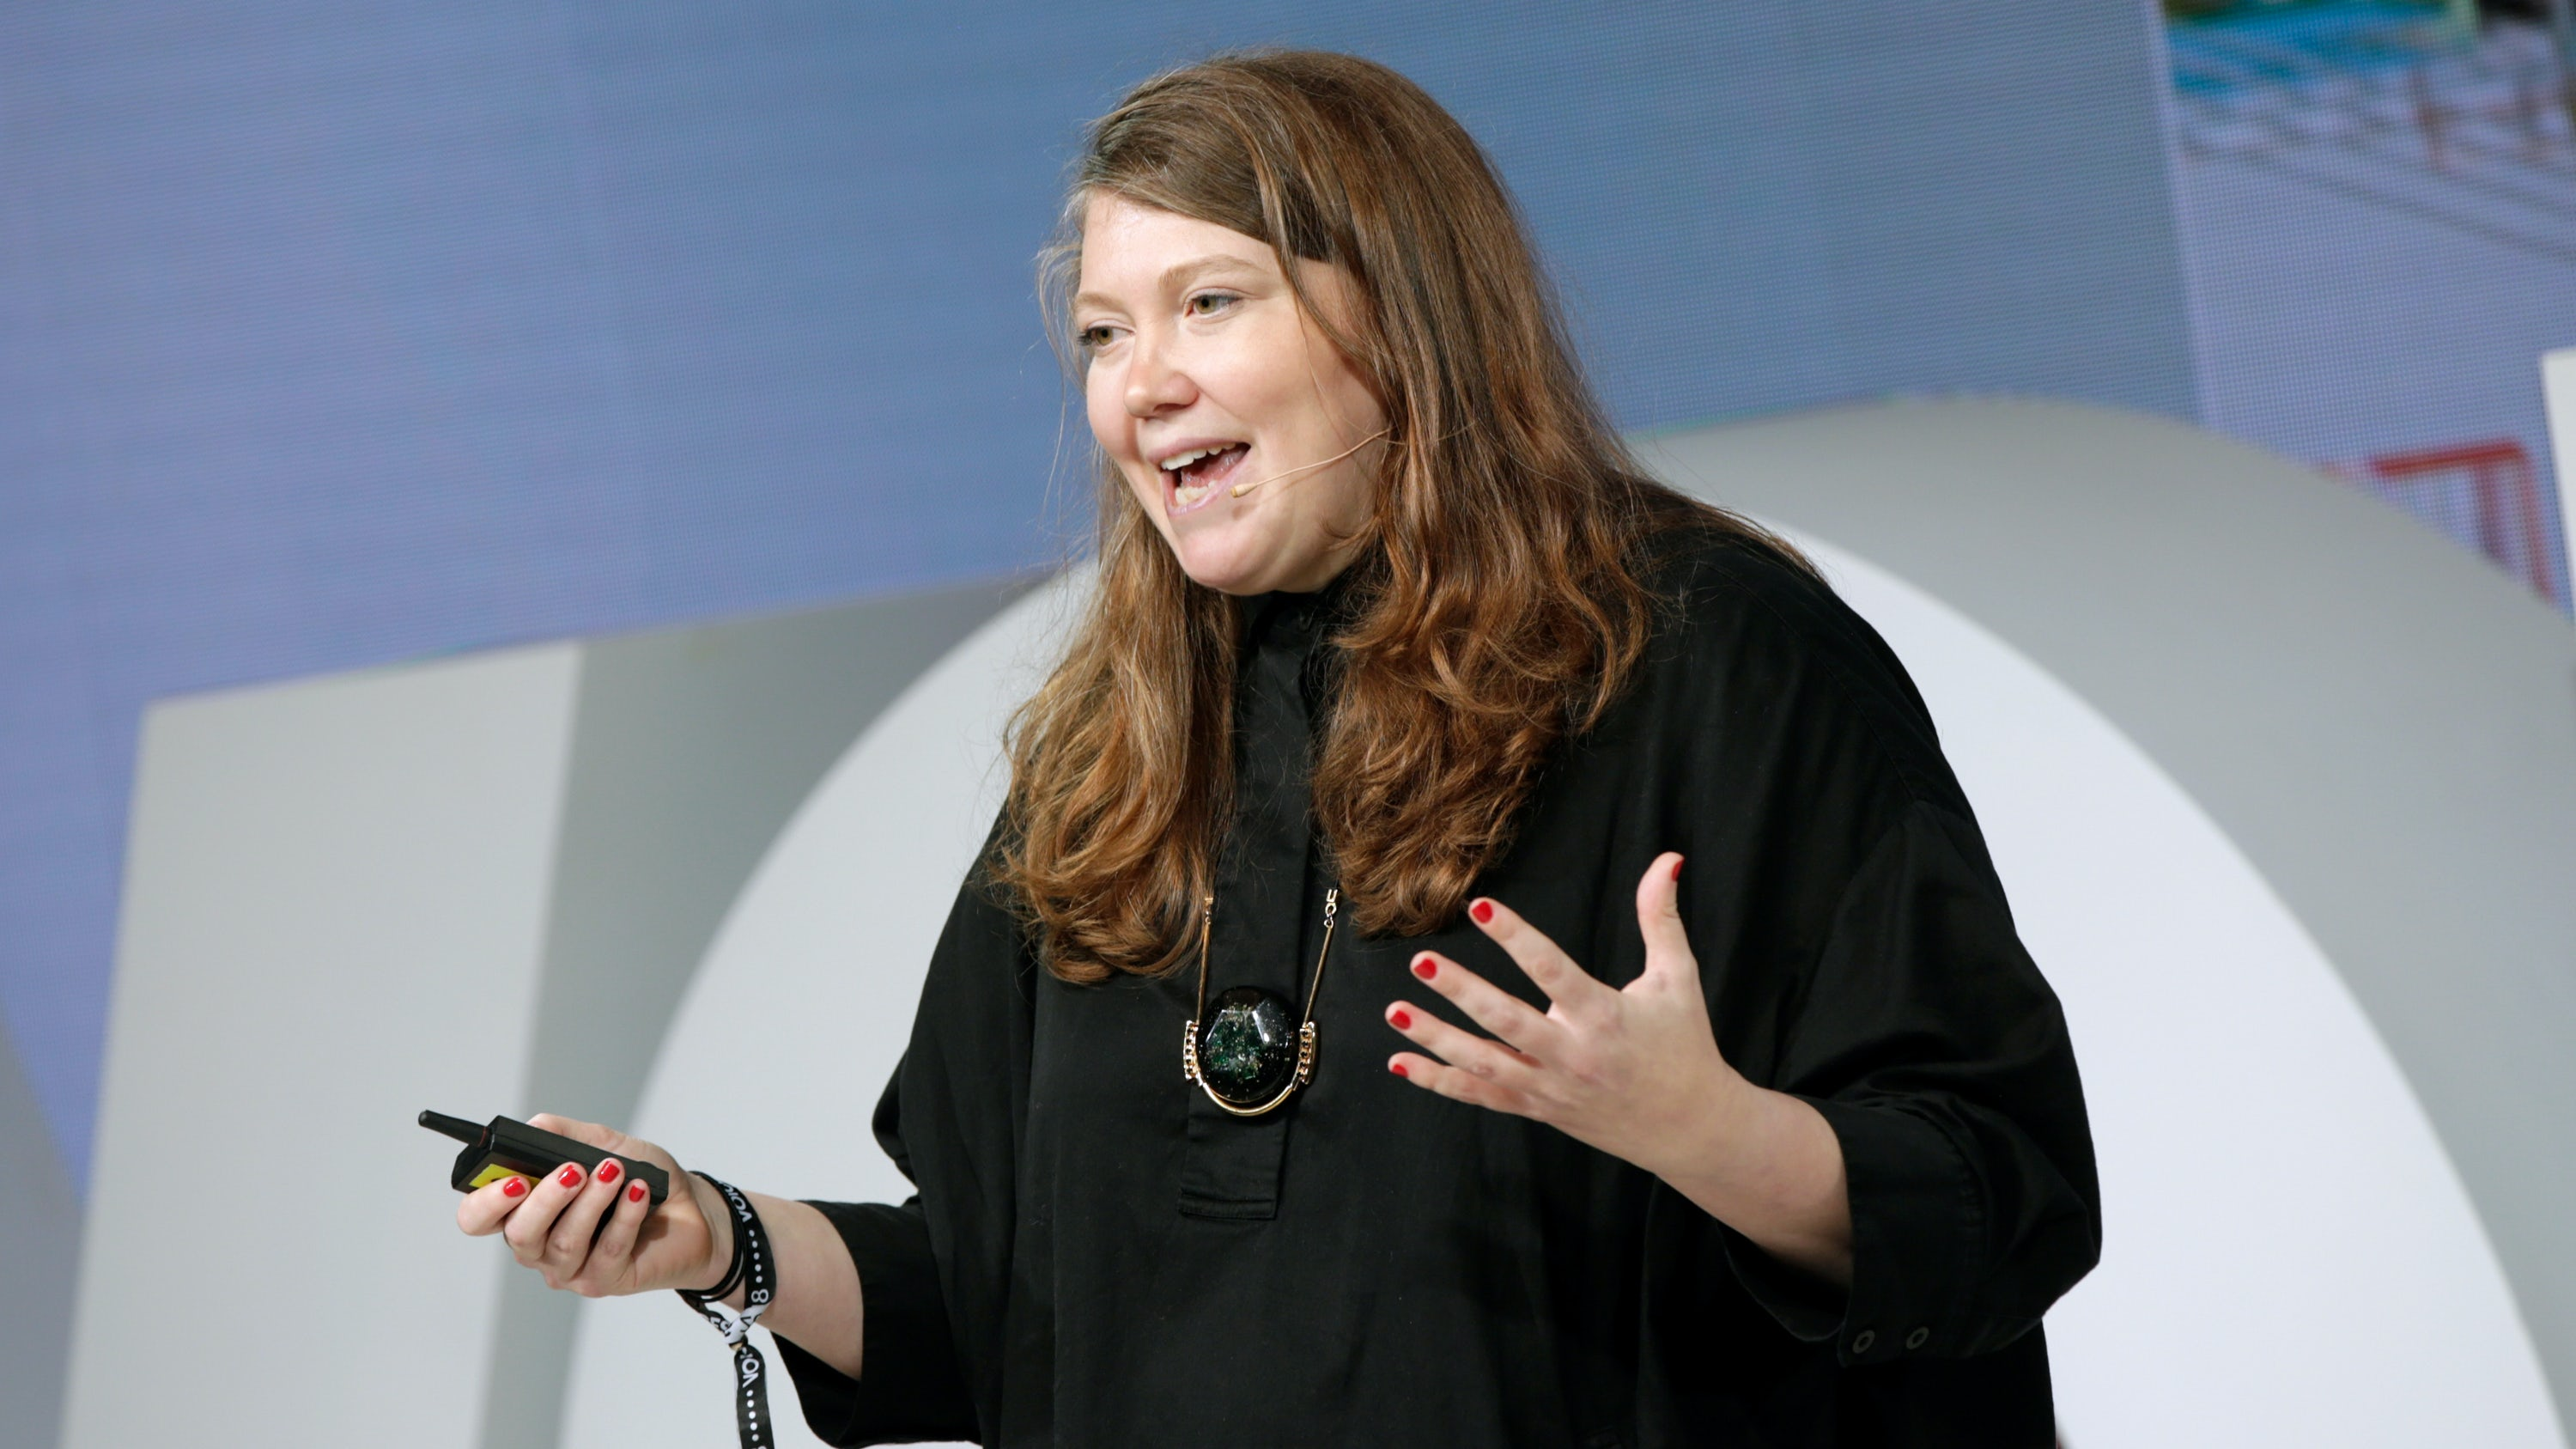 Lucie Greene speaking on-stage at BoF VOICES | Source: Getty Images for The Business of Fashion